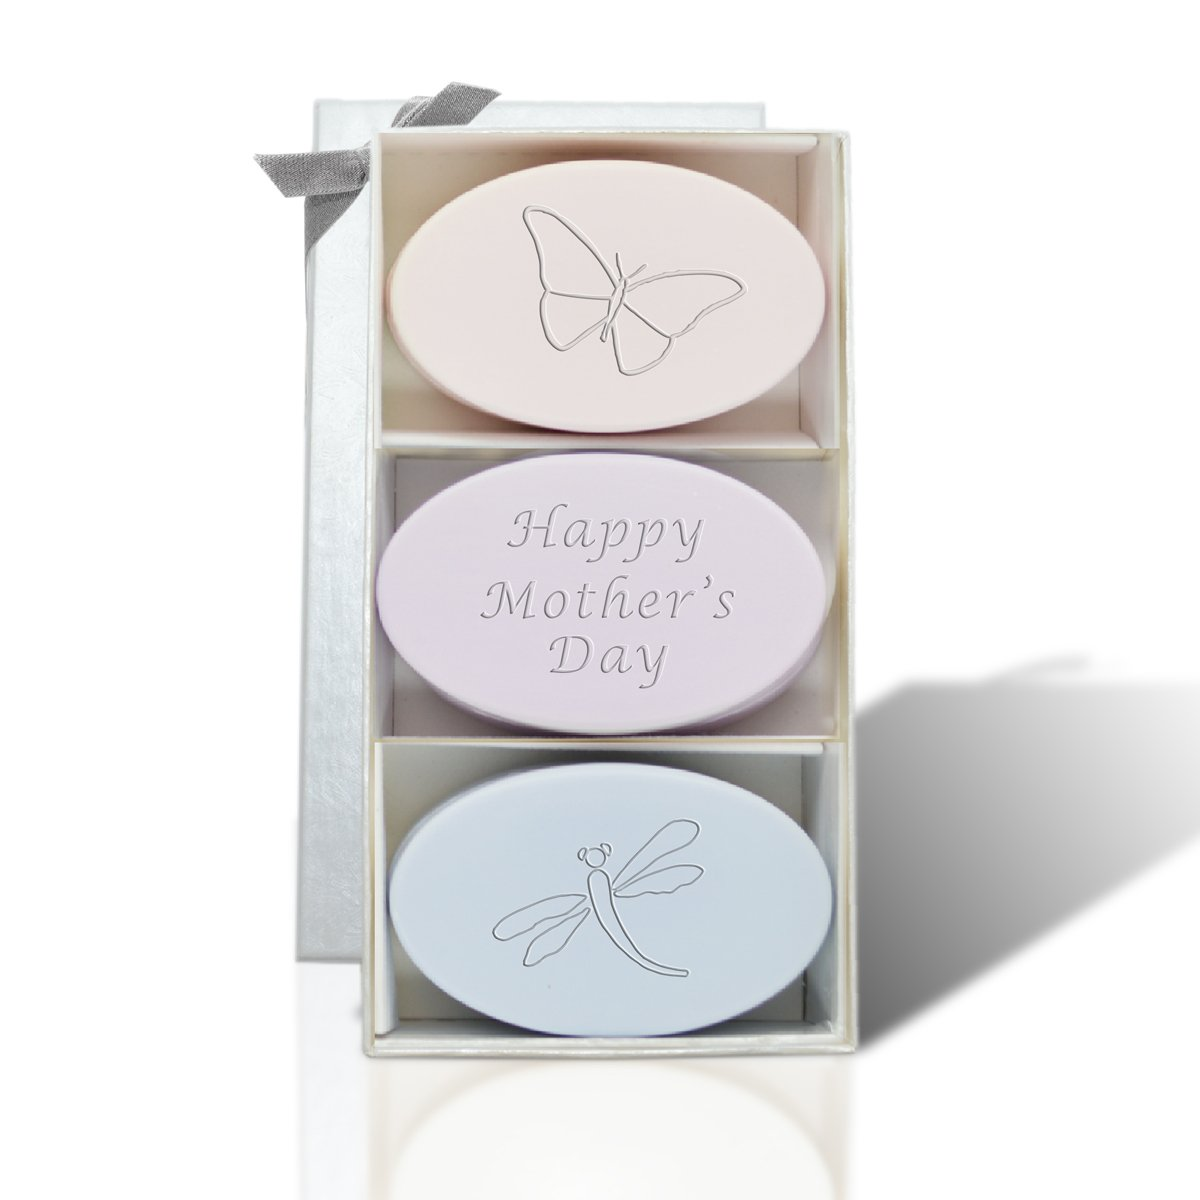 SIGNATURE SPA: MOTHER'S DAY